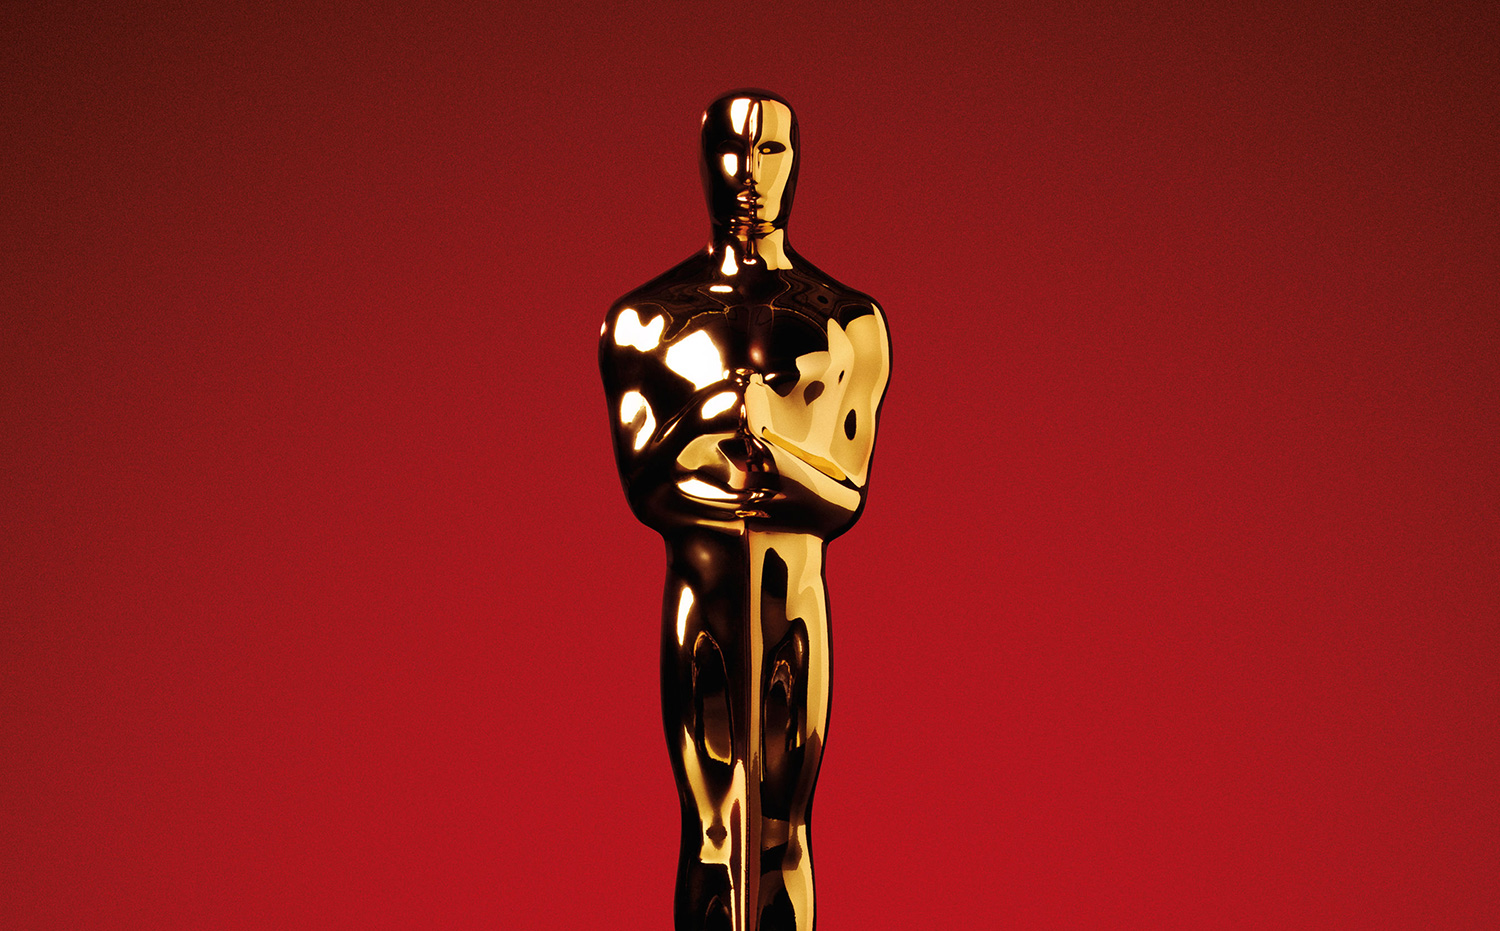 571533 likewise Its Time To Back Bobbies together with Final Predictions 89th Academy Awards Oscars also Movies Oscars also Oscars 2017 Peter Capaldi Adele Oprah Winfrey More You Didnt Know Had Academy Awards 1607576. on oscar award statue 2016